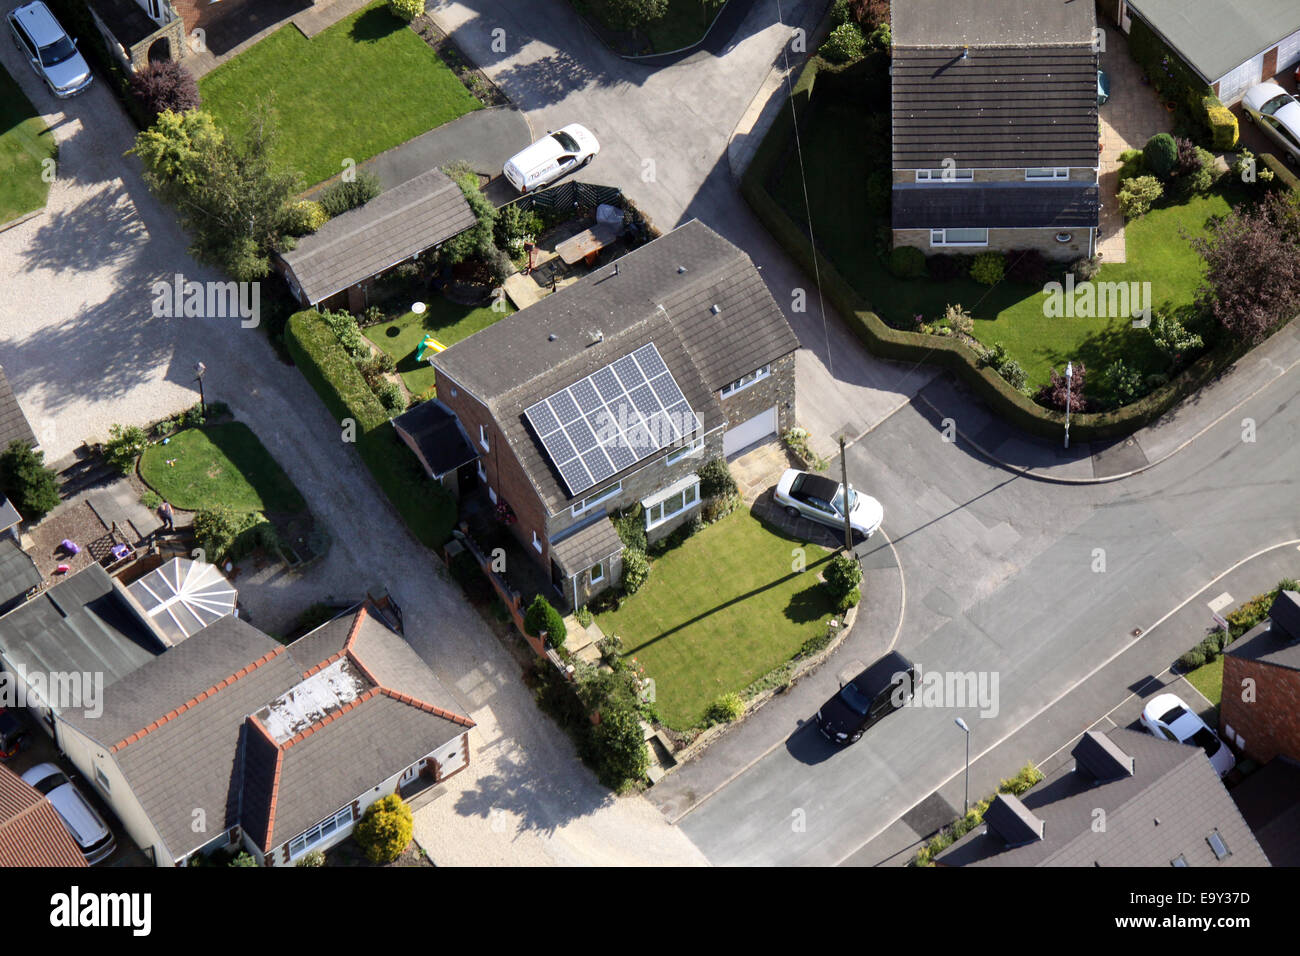 aerial view of a domestic house with solar panels on the roof, UK - Stock Image